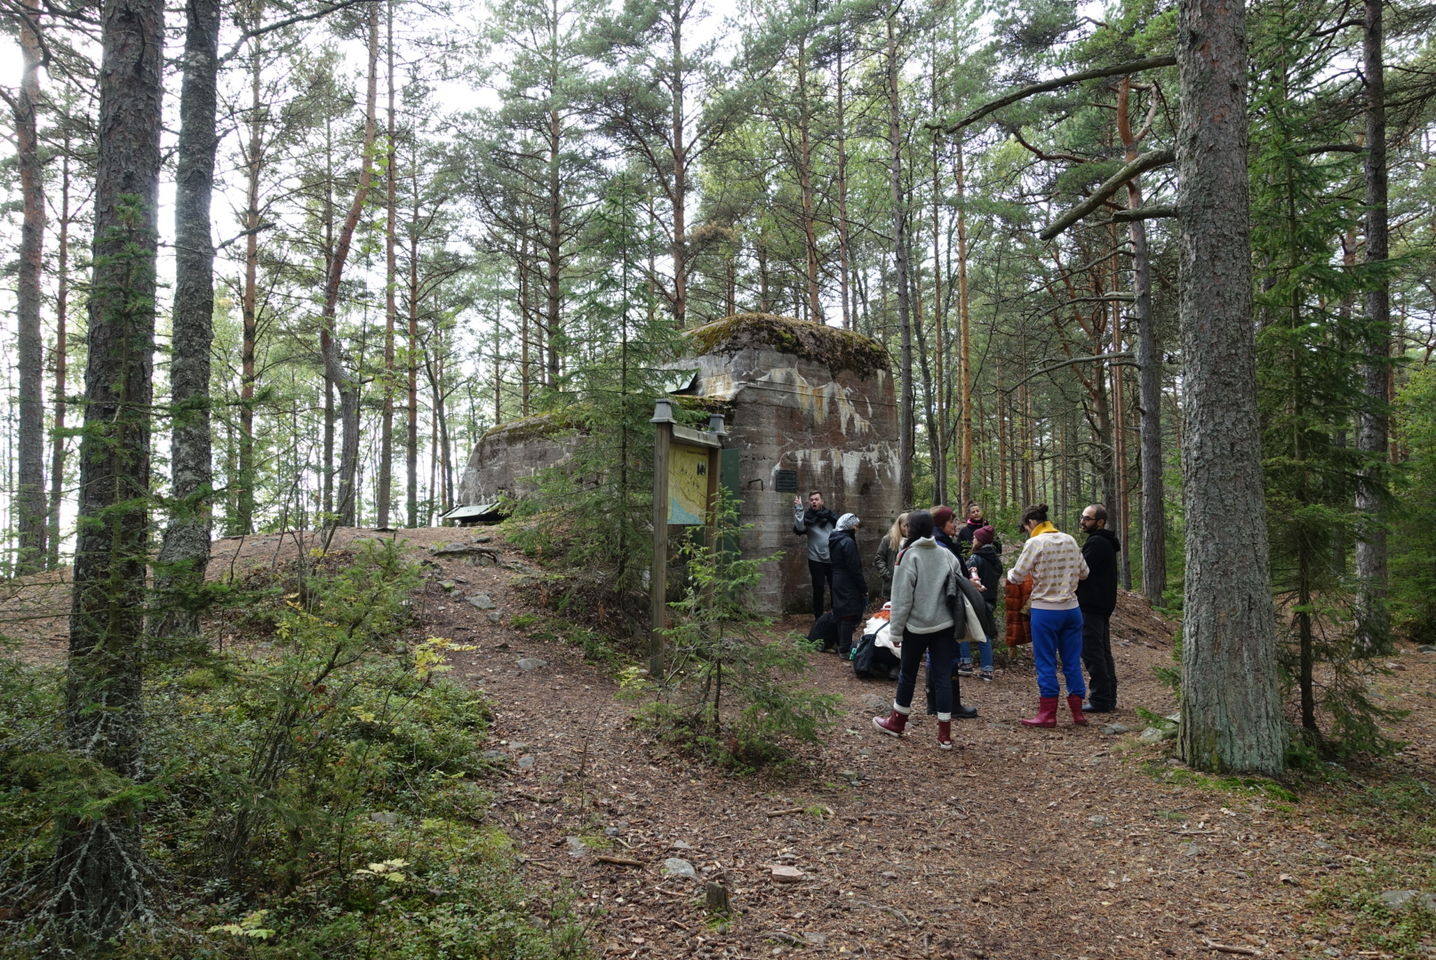 Students gather outside an old military bunker, in the middle of a forest, on the island of Reposaari